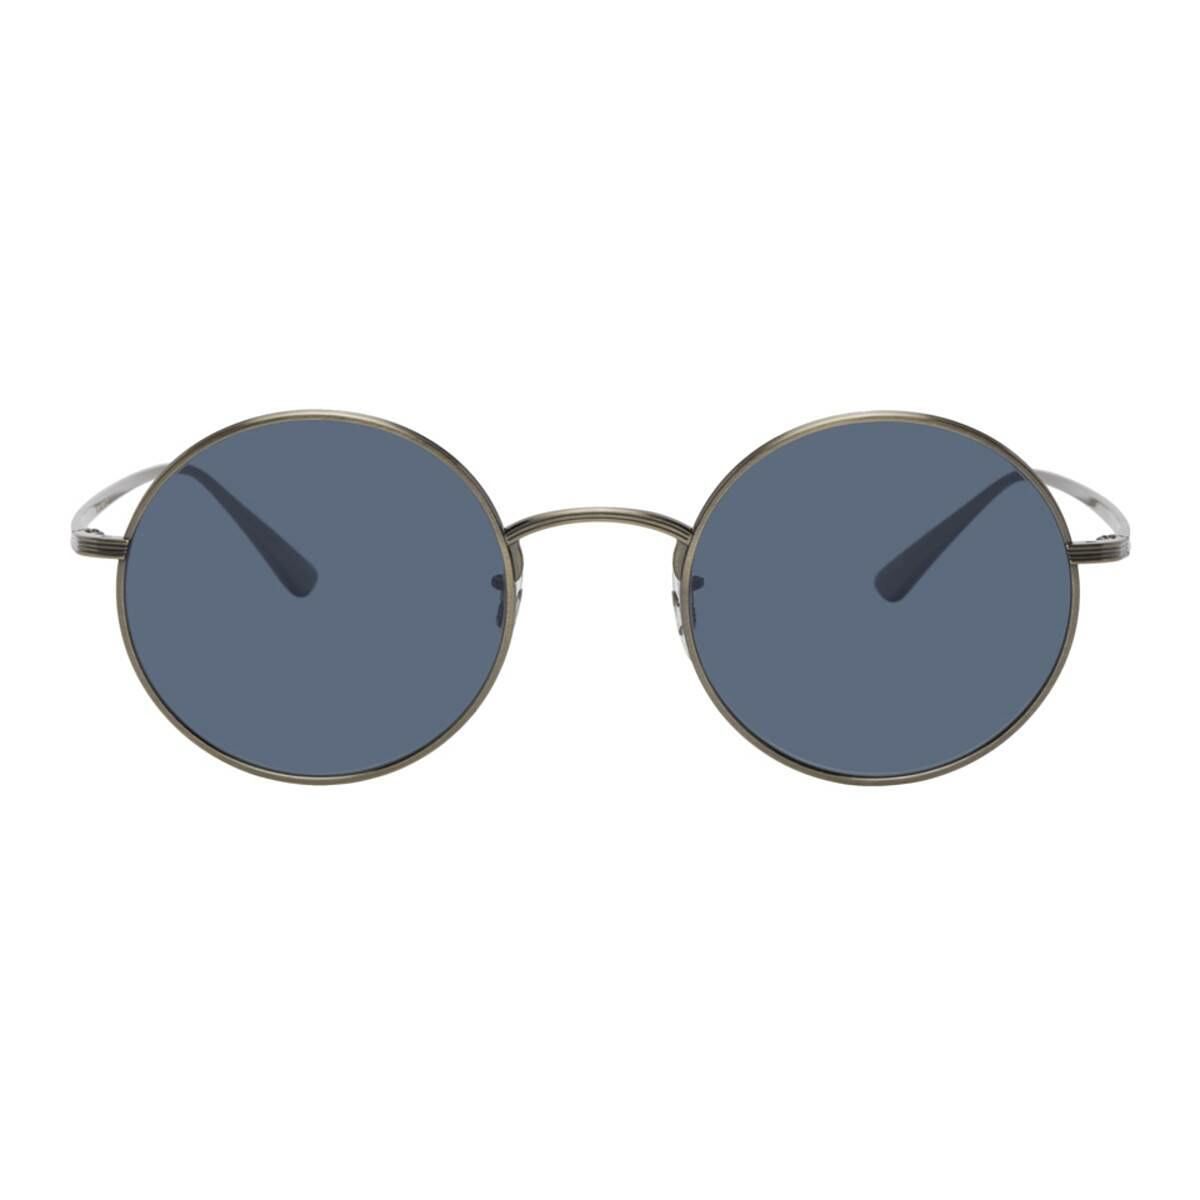 The Row Gunmetal Oliver Peoples Edition After Midnight Sunglasses Ssense USA MEN Men ACCESSORIES Mens SUNGLASSES